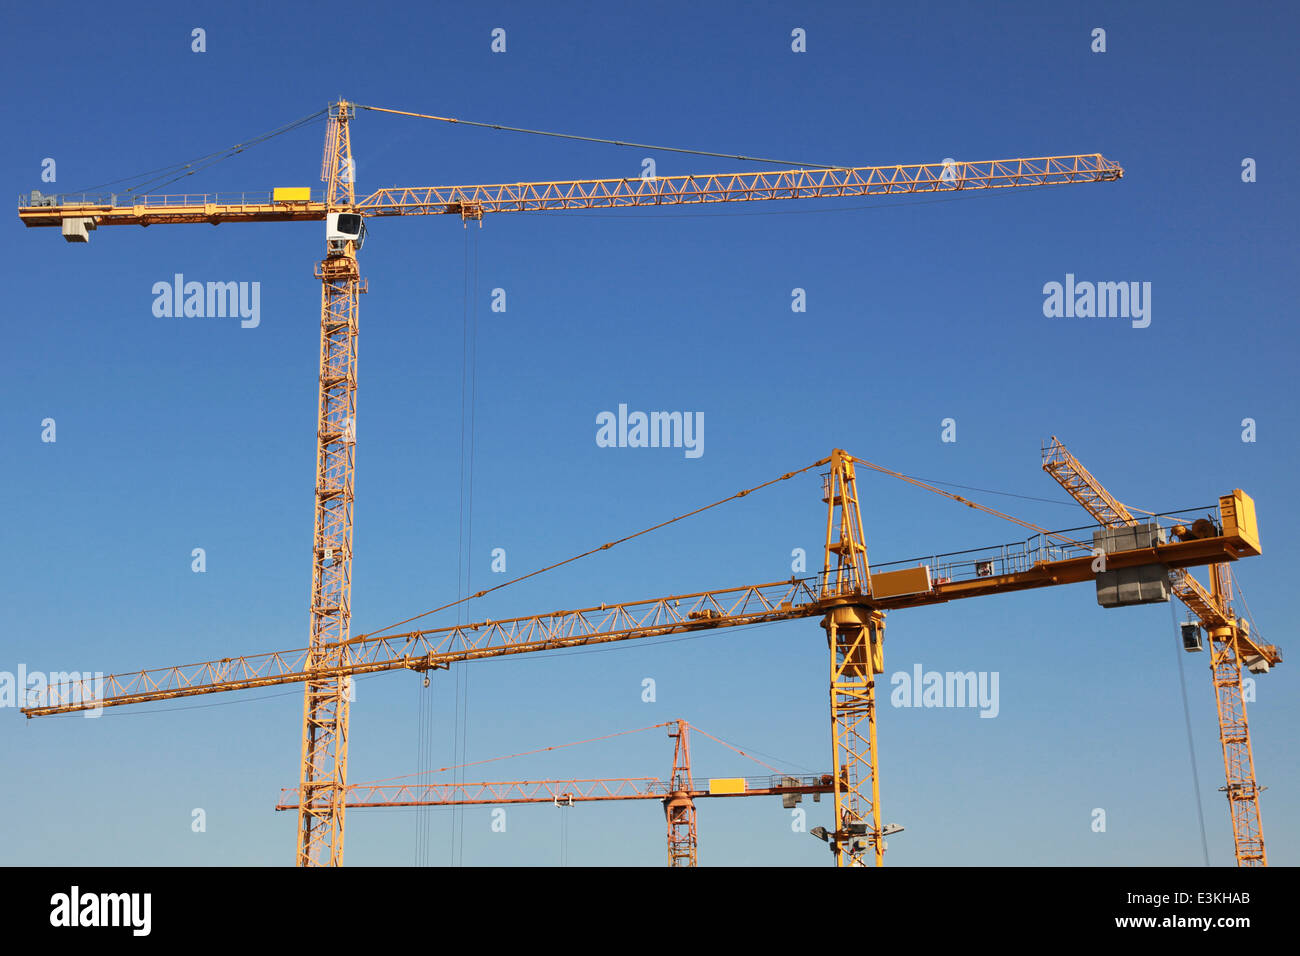 Several yellow tower cranes on a construction site - Stock Image